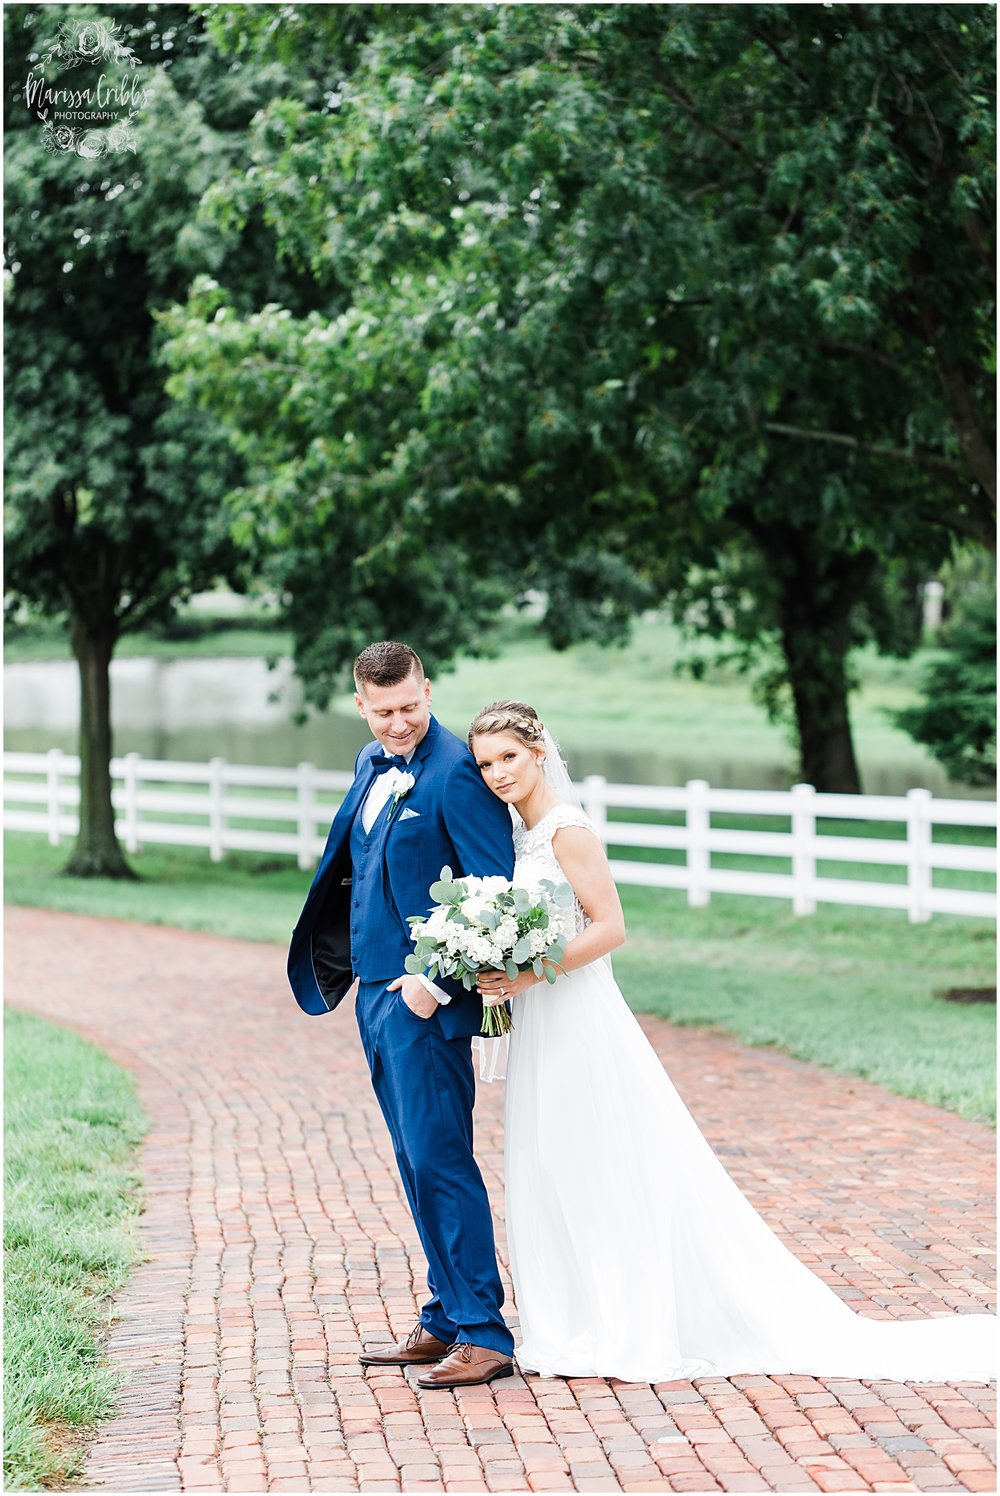 ROUNKLES WEDDING | MARISSA CRIBBS PHOTOGRAPHY | MILDALE FARM_6117.jpg